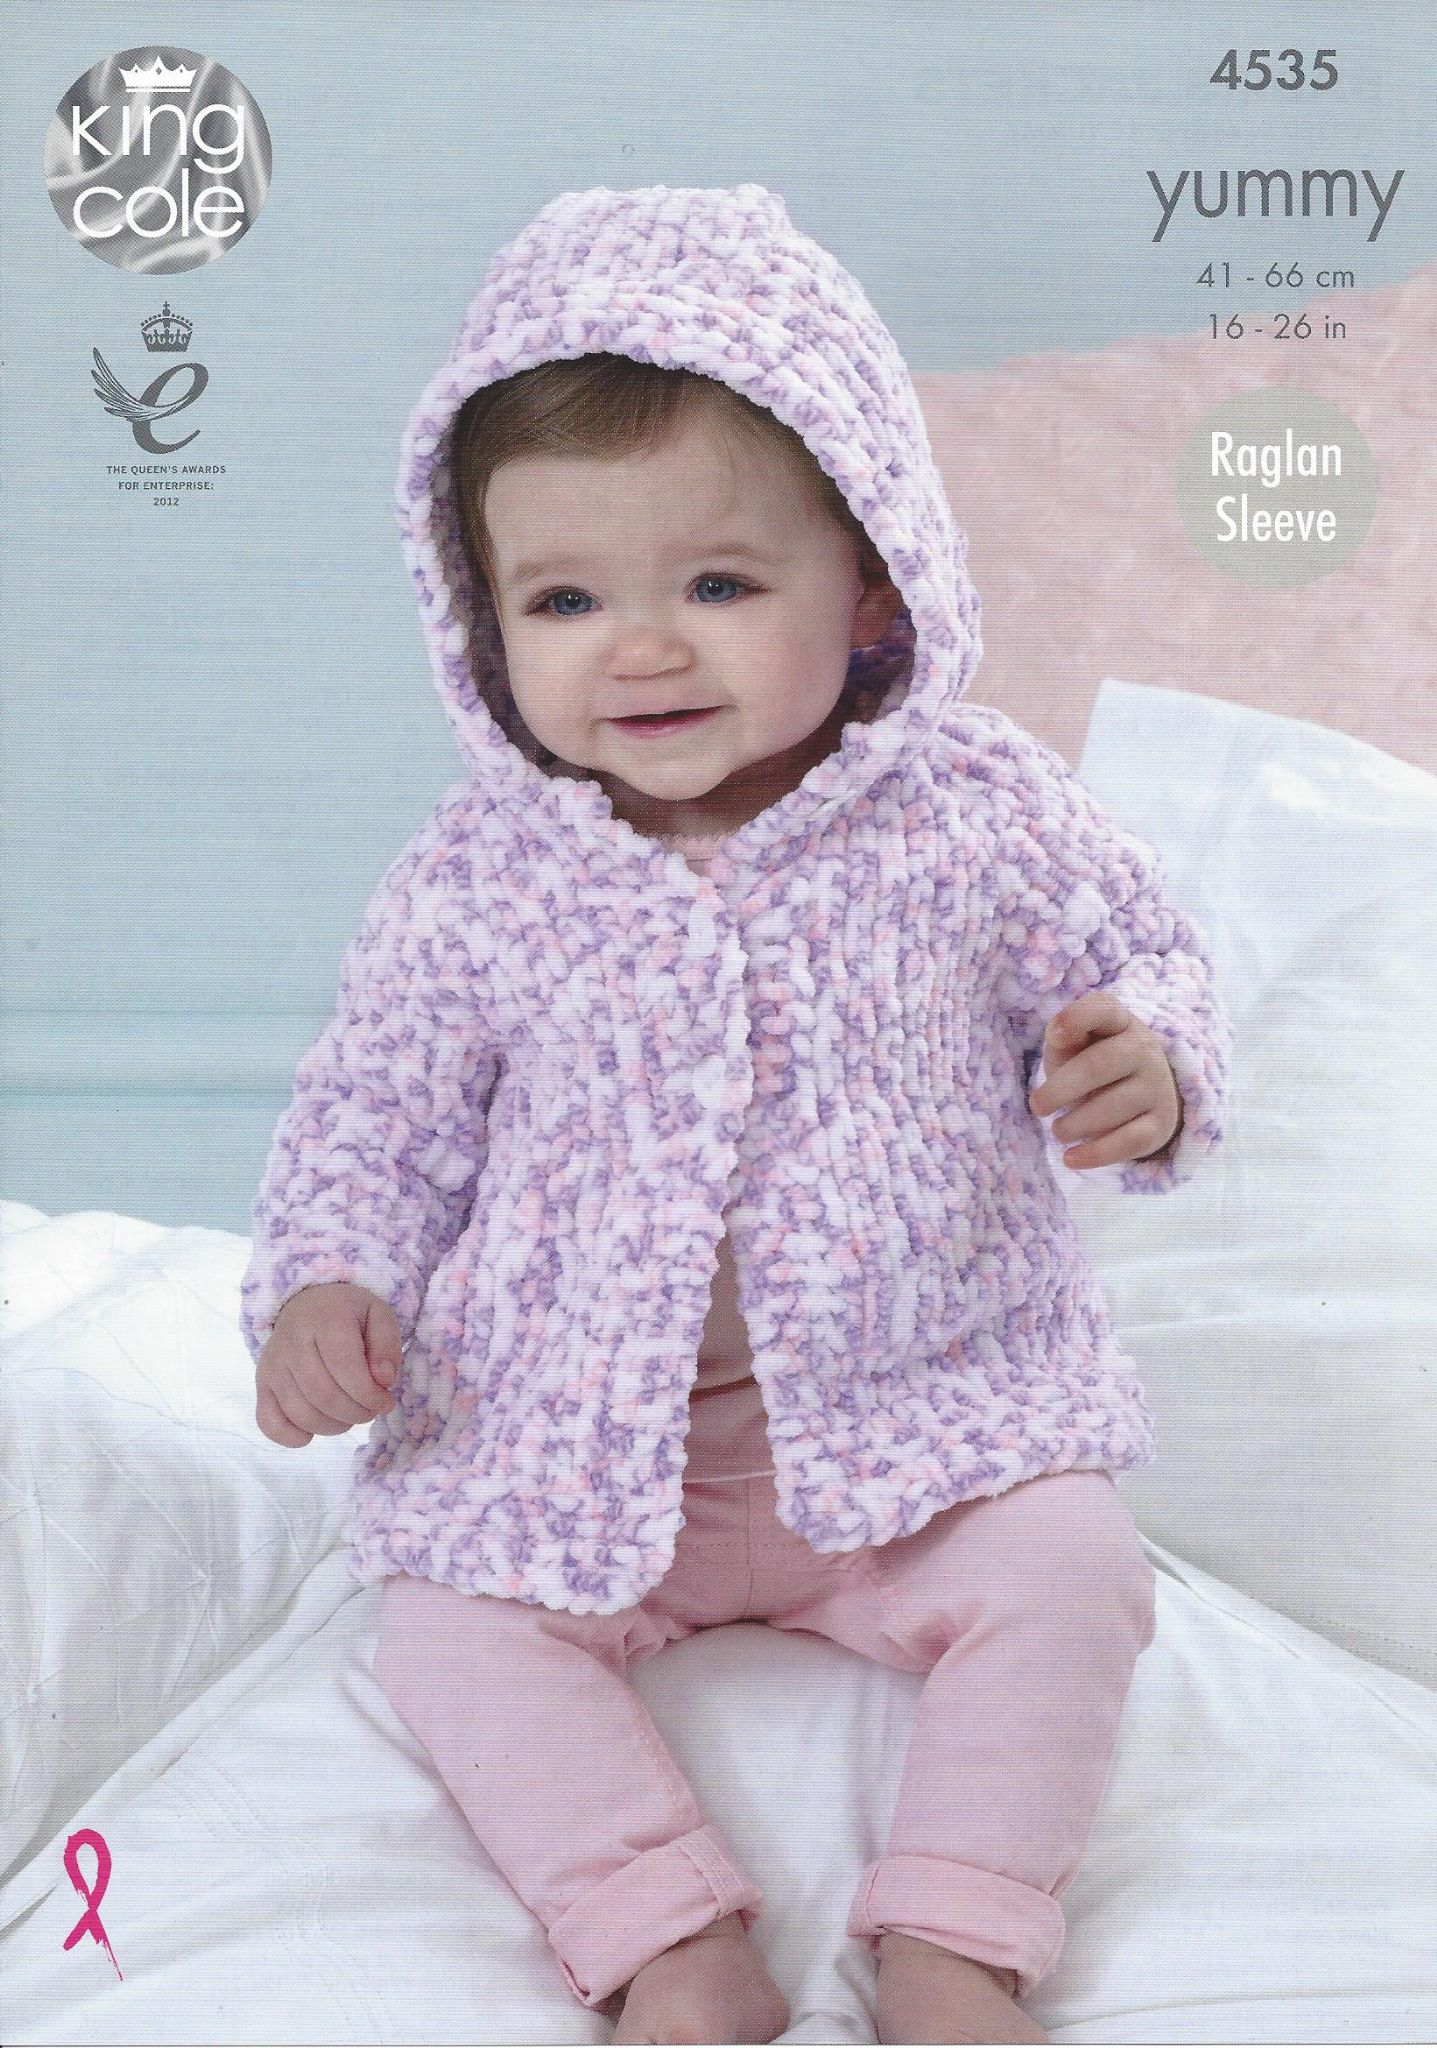 3bac8ace9418e7 ... offer discounts 82f68 b141d King Cole Yummy - 4535 Baby Jackets Knitting  Pattern ...